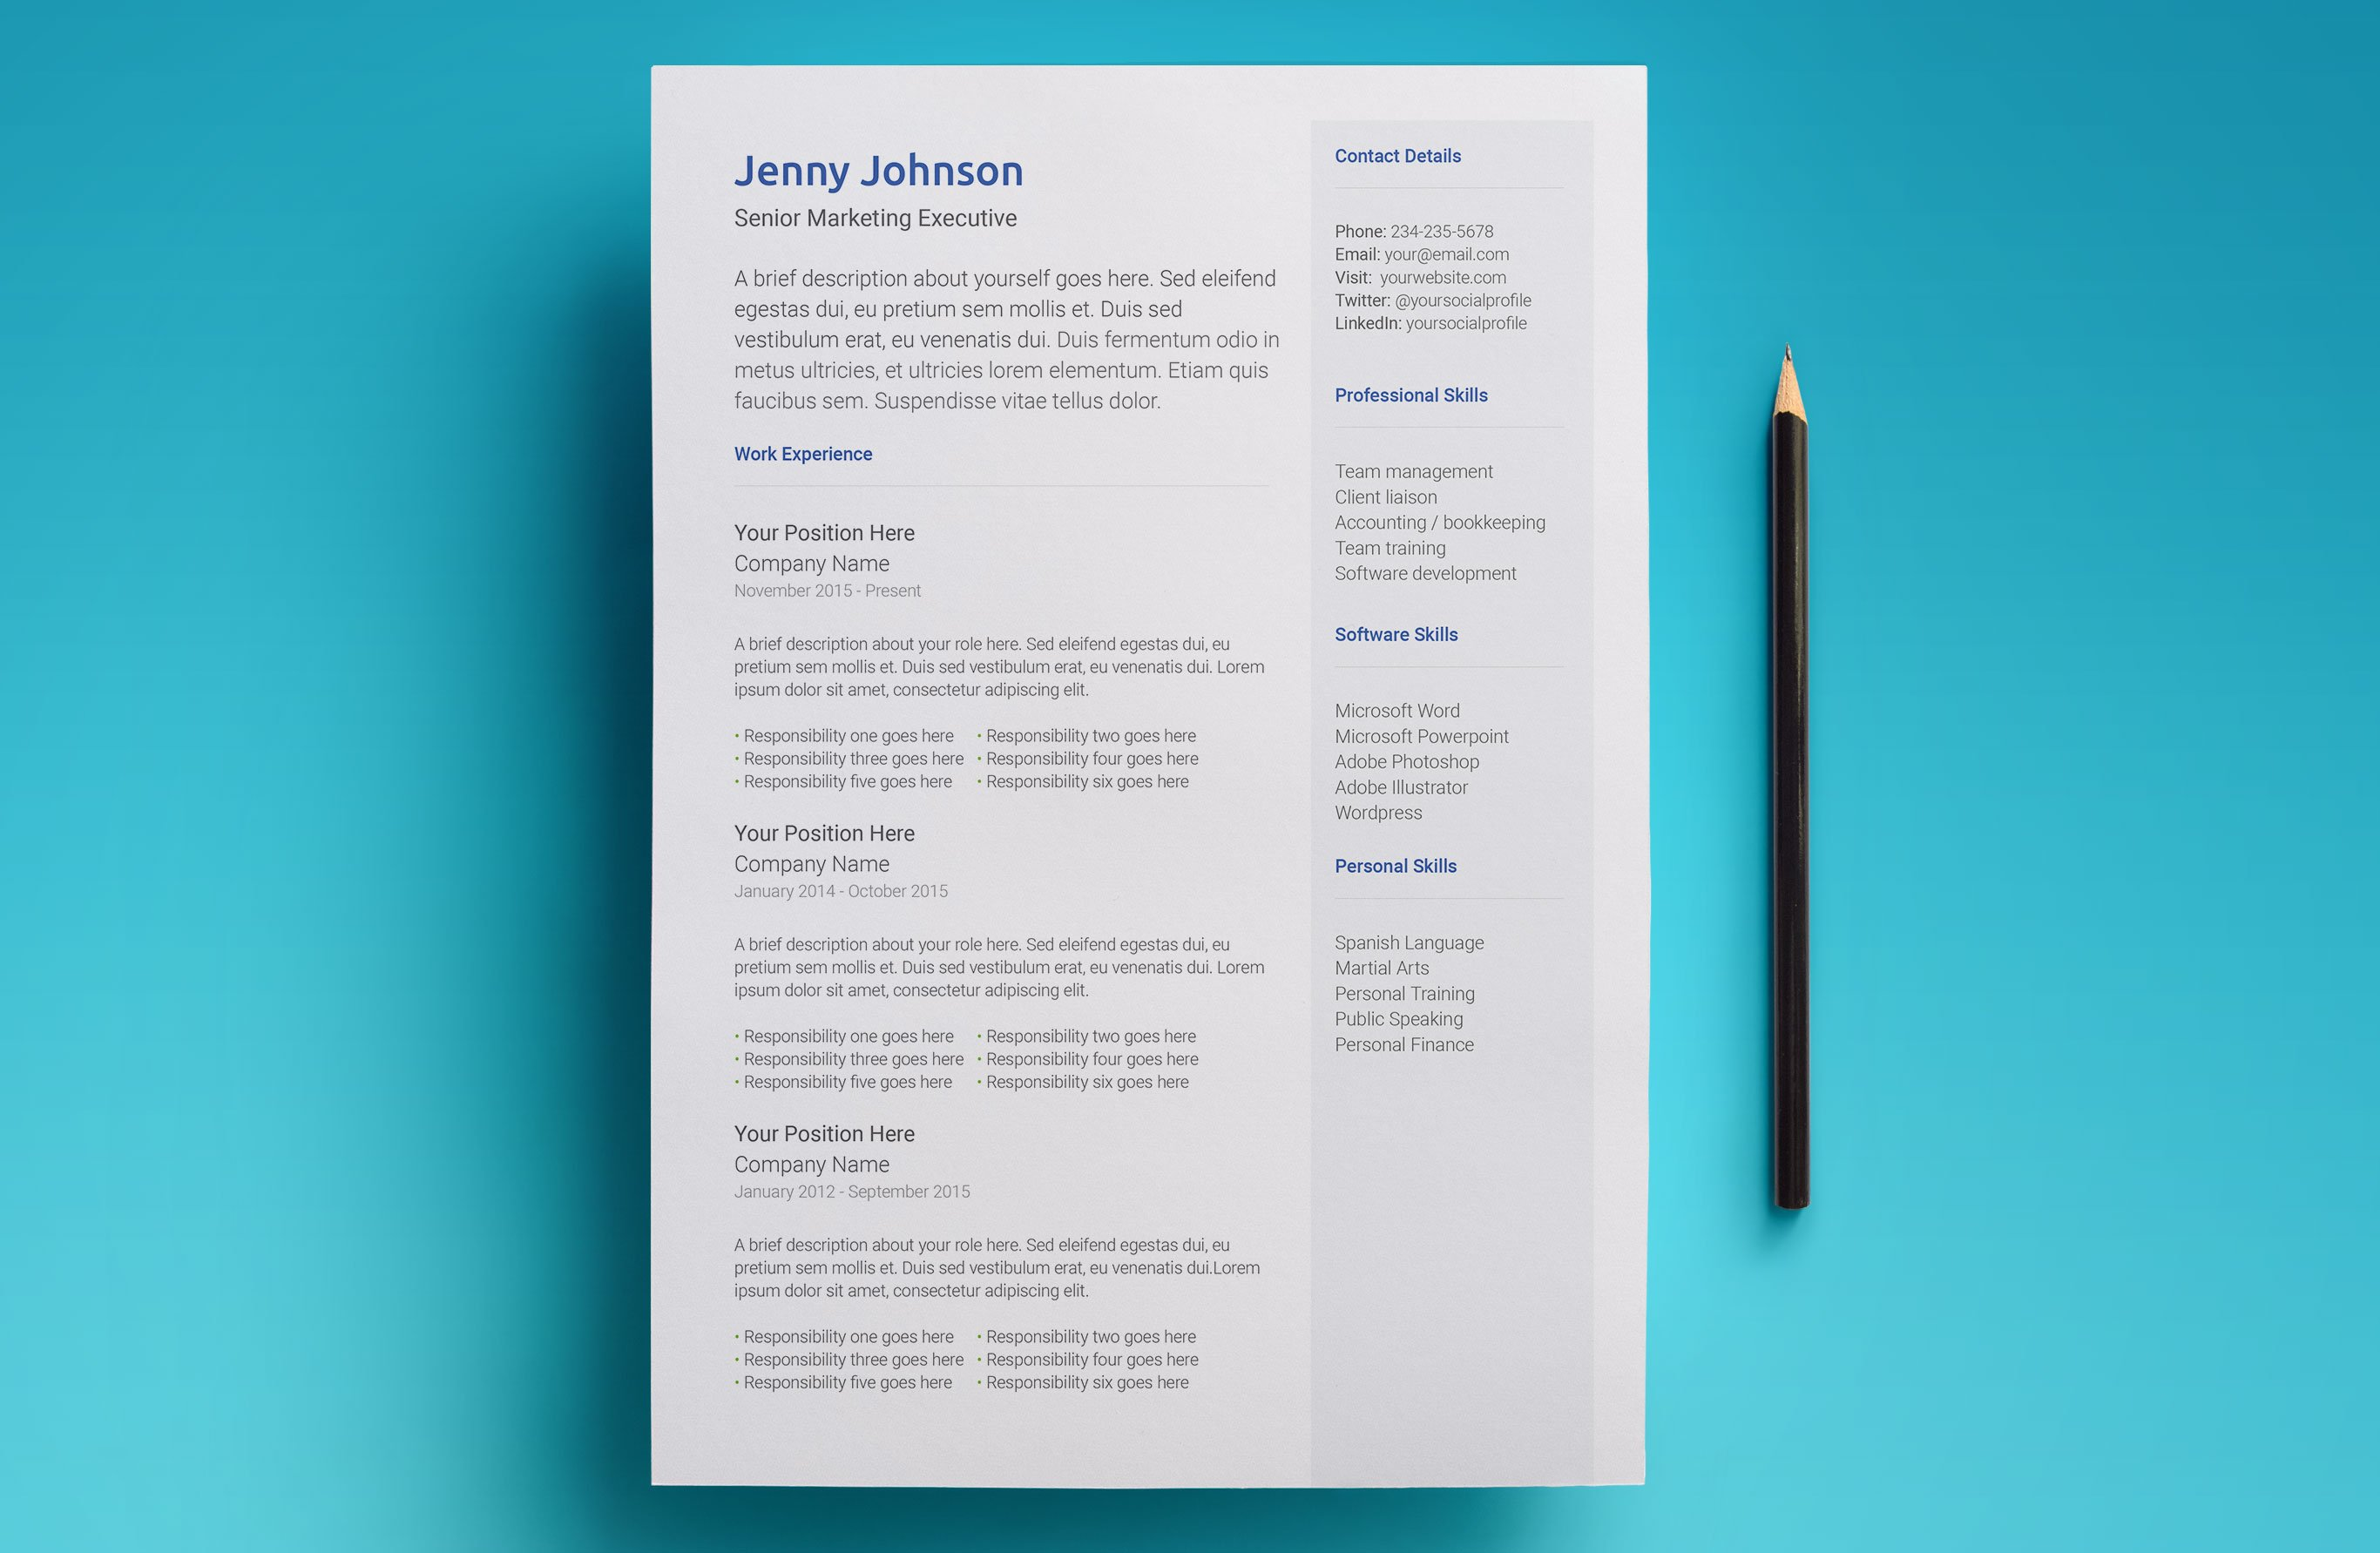 Create An Amazing Resume In Minutes With This Simple Template For Google Docs